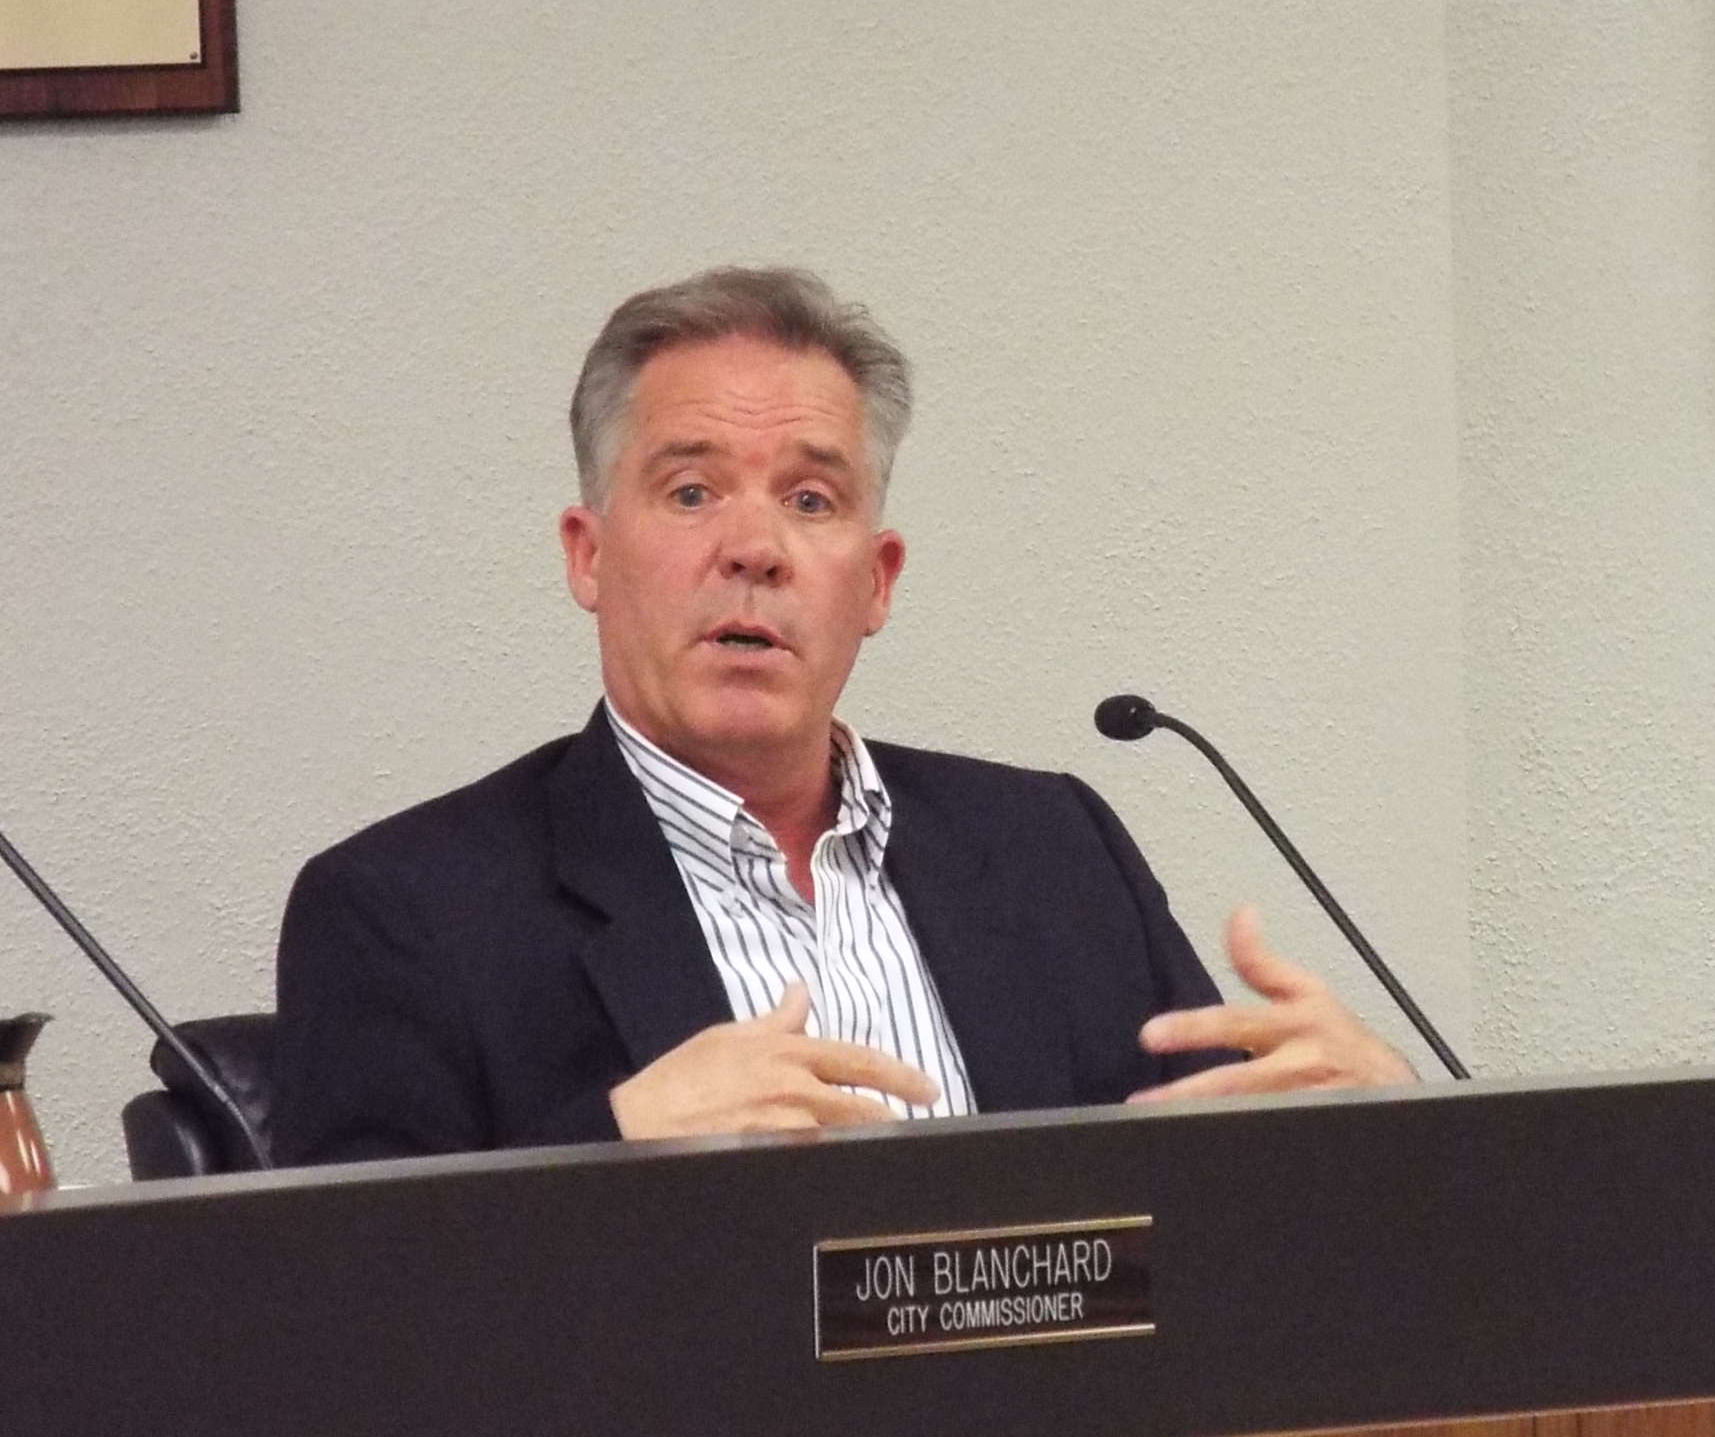 Blanchard Drops Out of City Commission Race